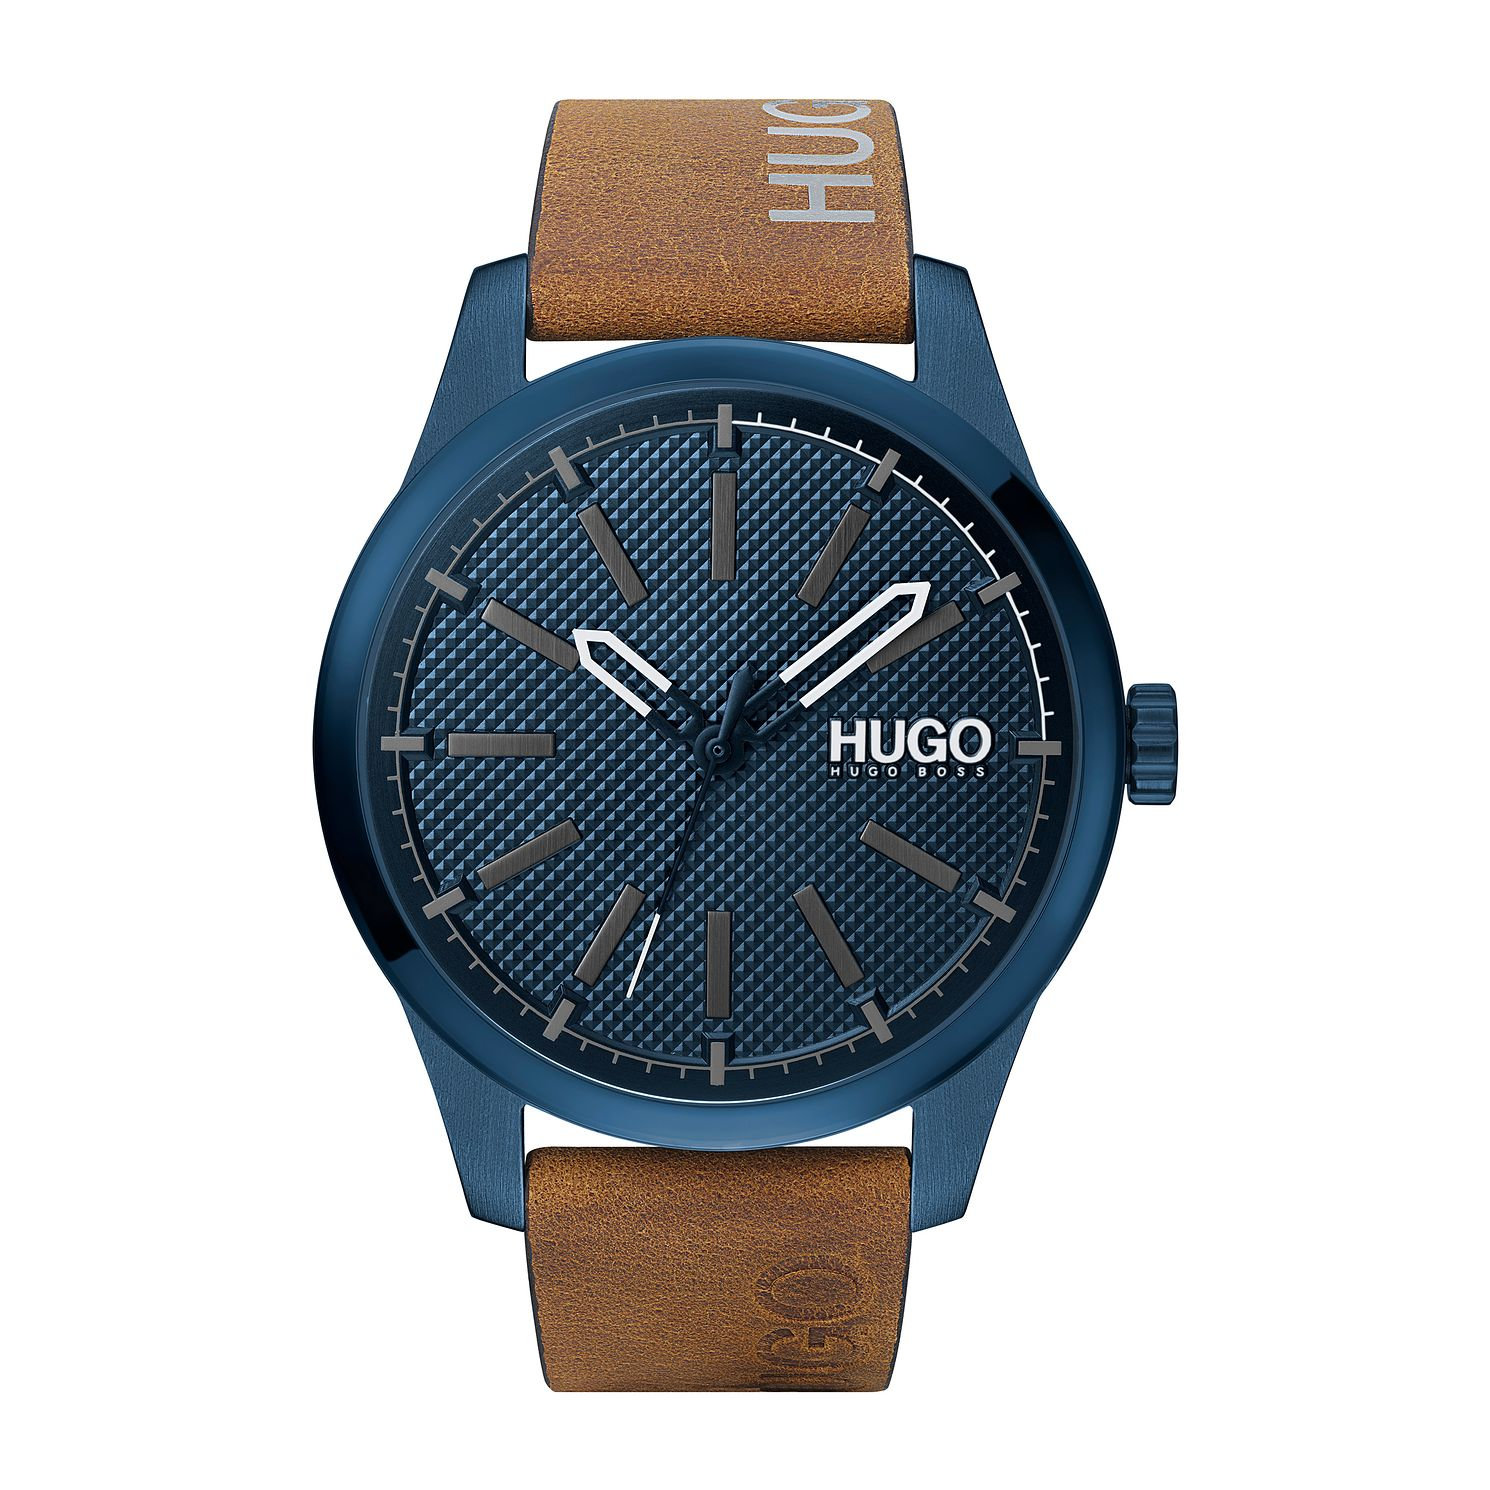 HUGO INVENT Men's Brown Leather Strap Watch - Product number 4853016